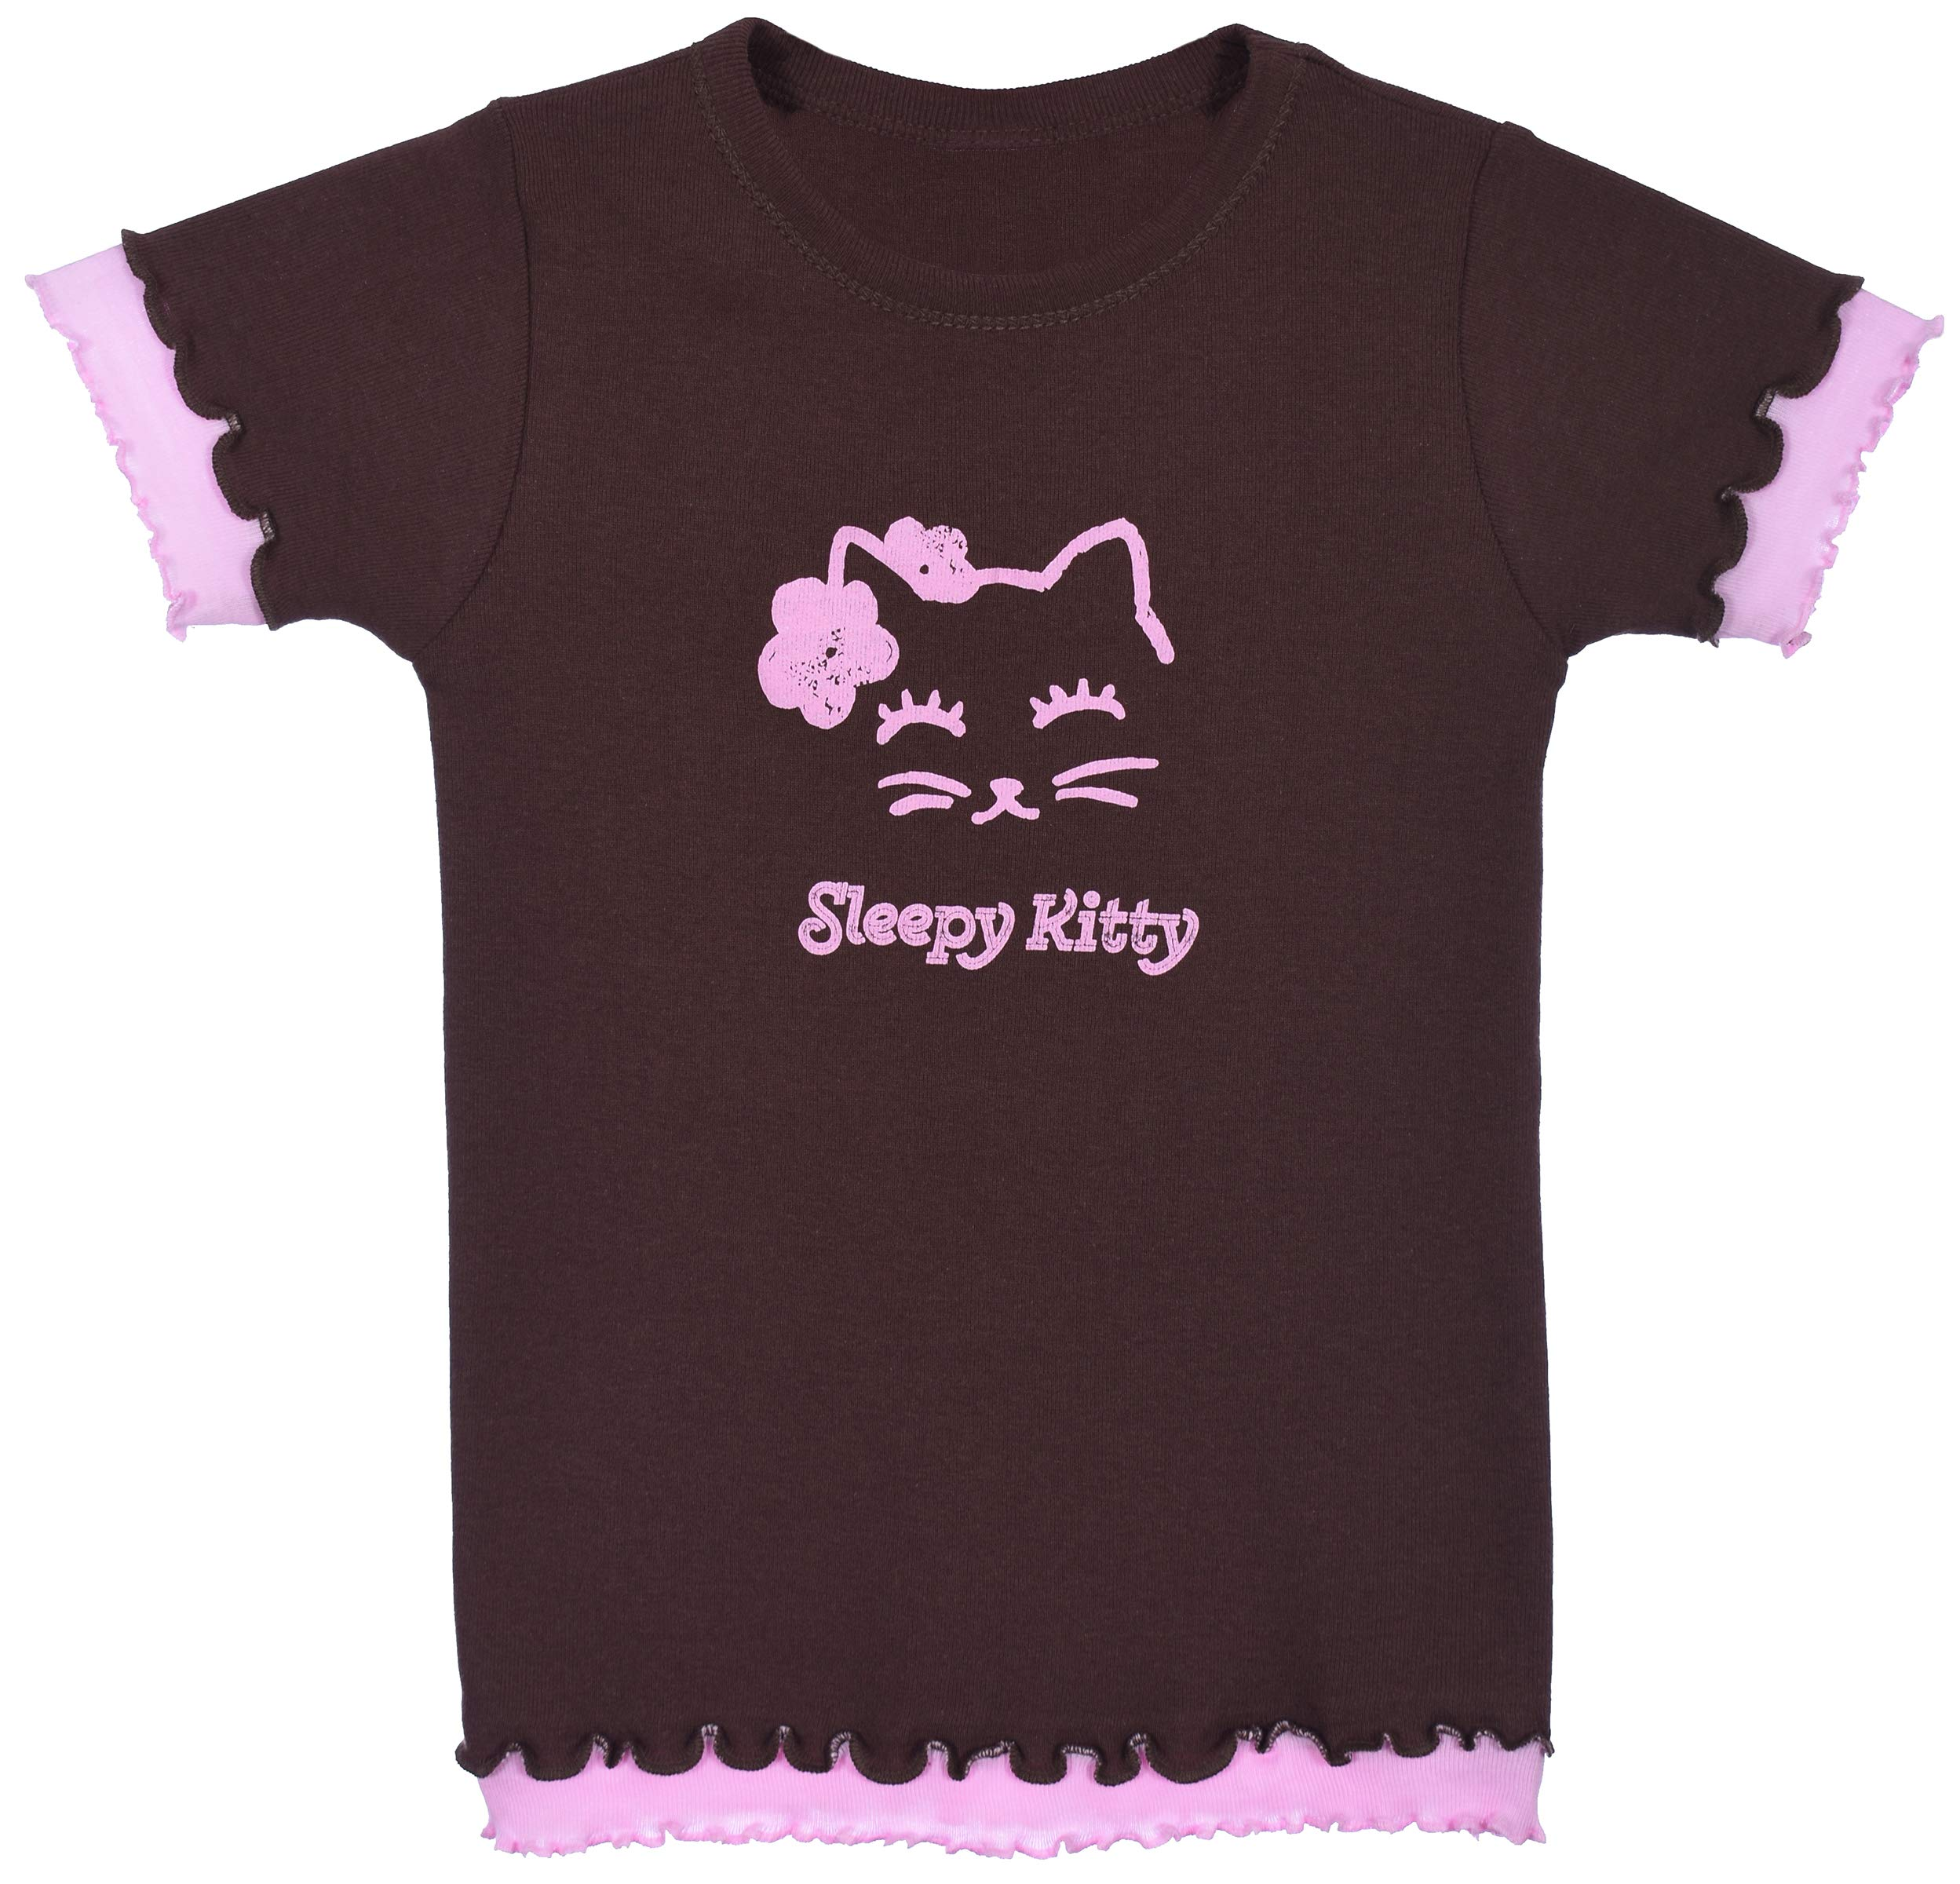 JH DESIGN GROUP Girls Super Cute Sleepy Kitty Chocolate Brown & Pink Shirt with Ruffle Finish (2T, Brown & Pink)